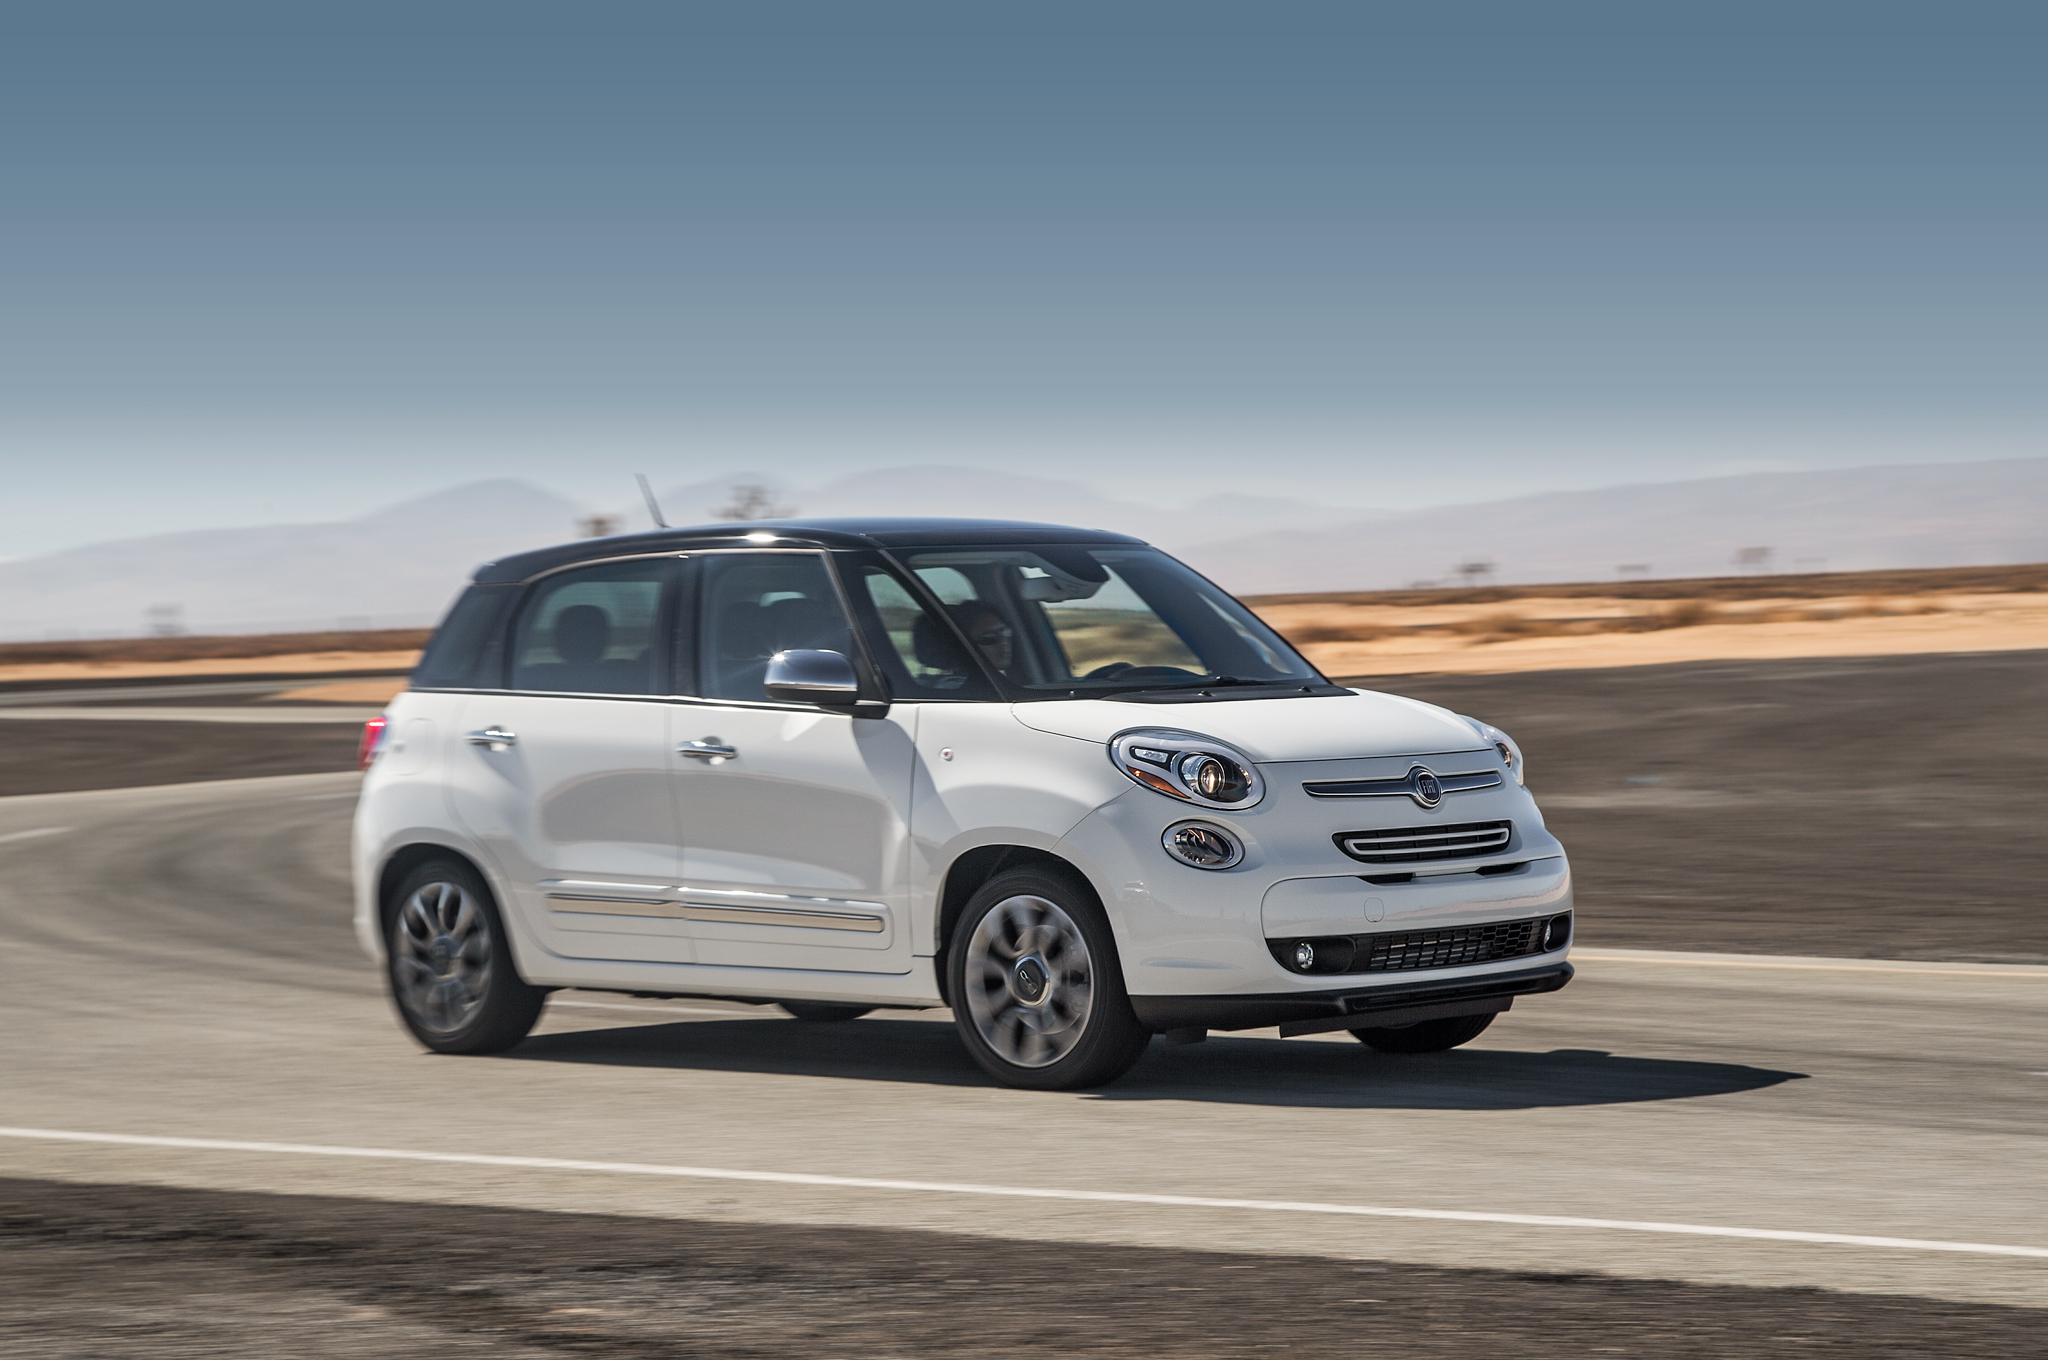 2014 Motor Trend Car of the Year Contender Fiat 500L Motor Trend